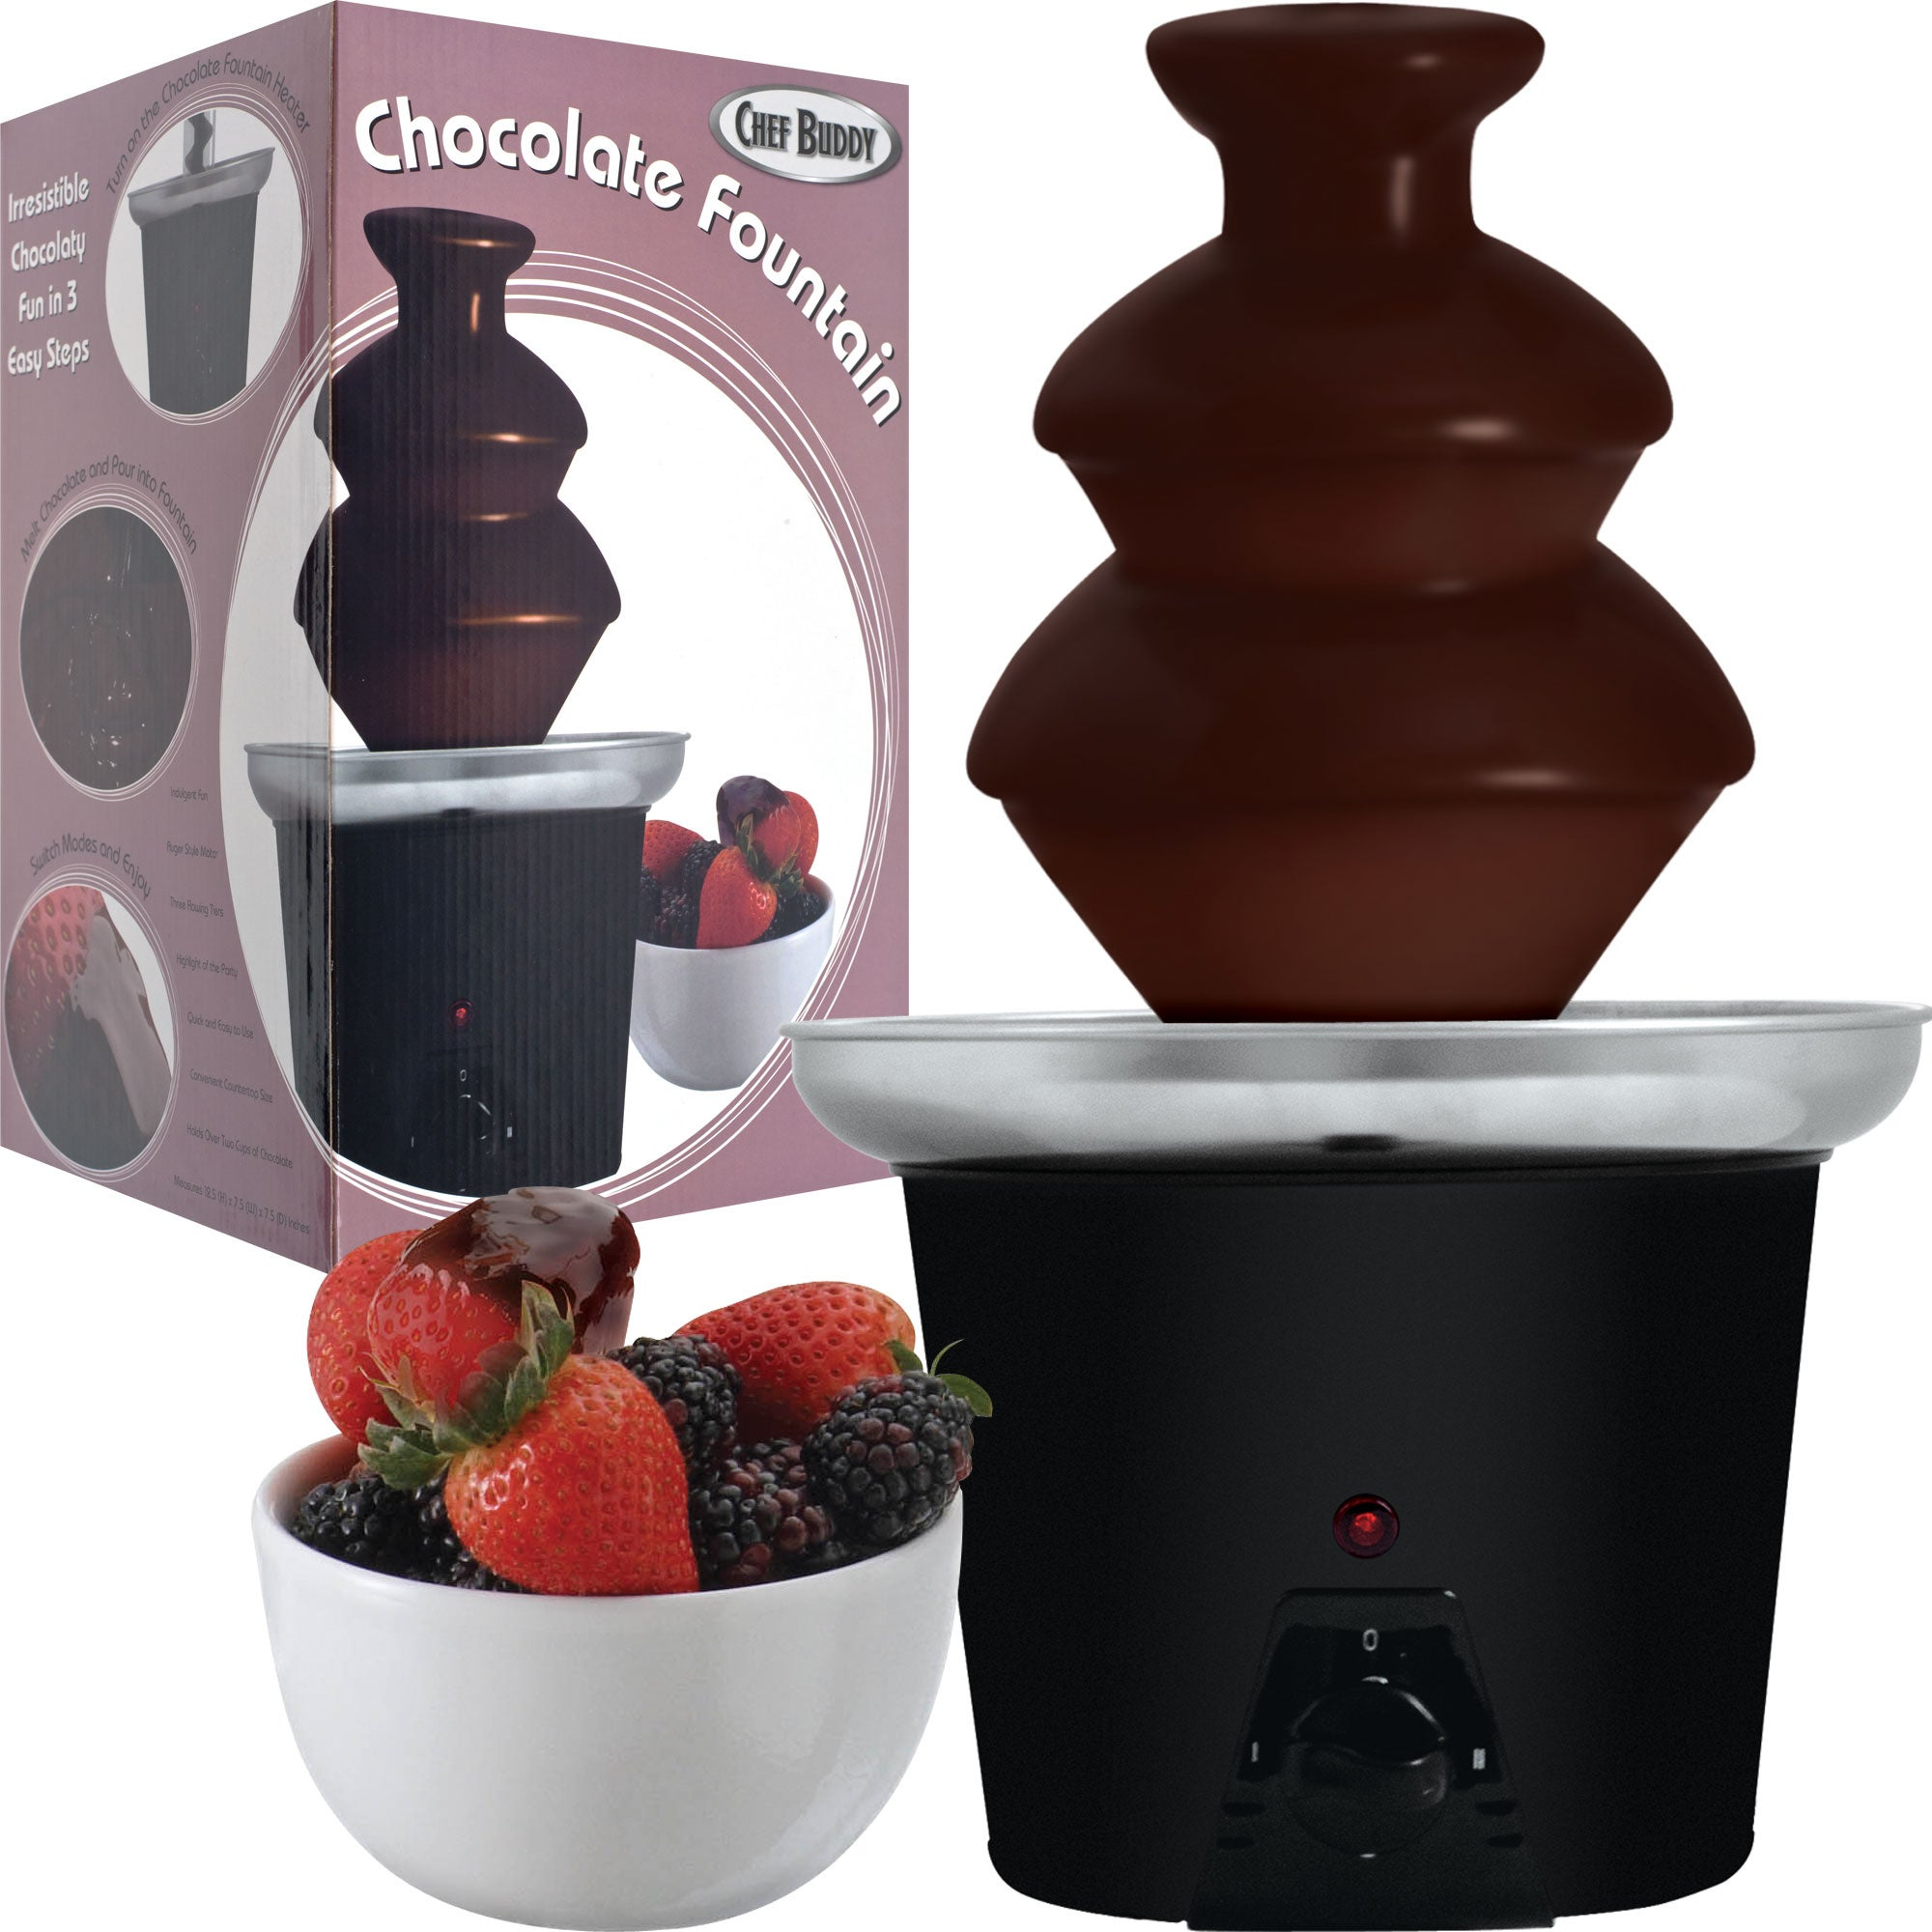 Chef Buddy Countertop Chocolate Fountain - Thumbnail 0